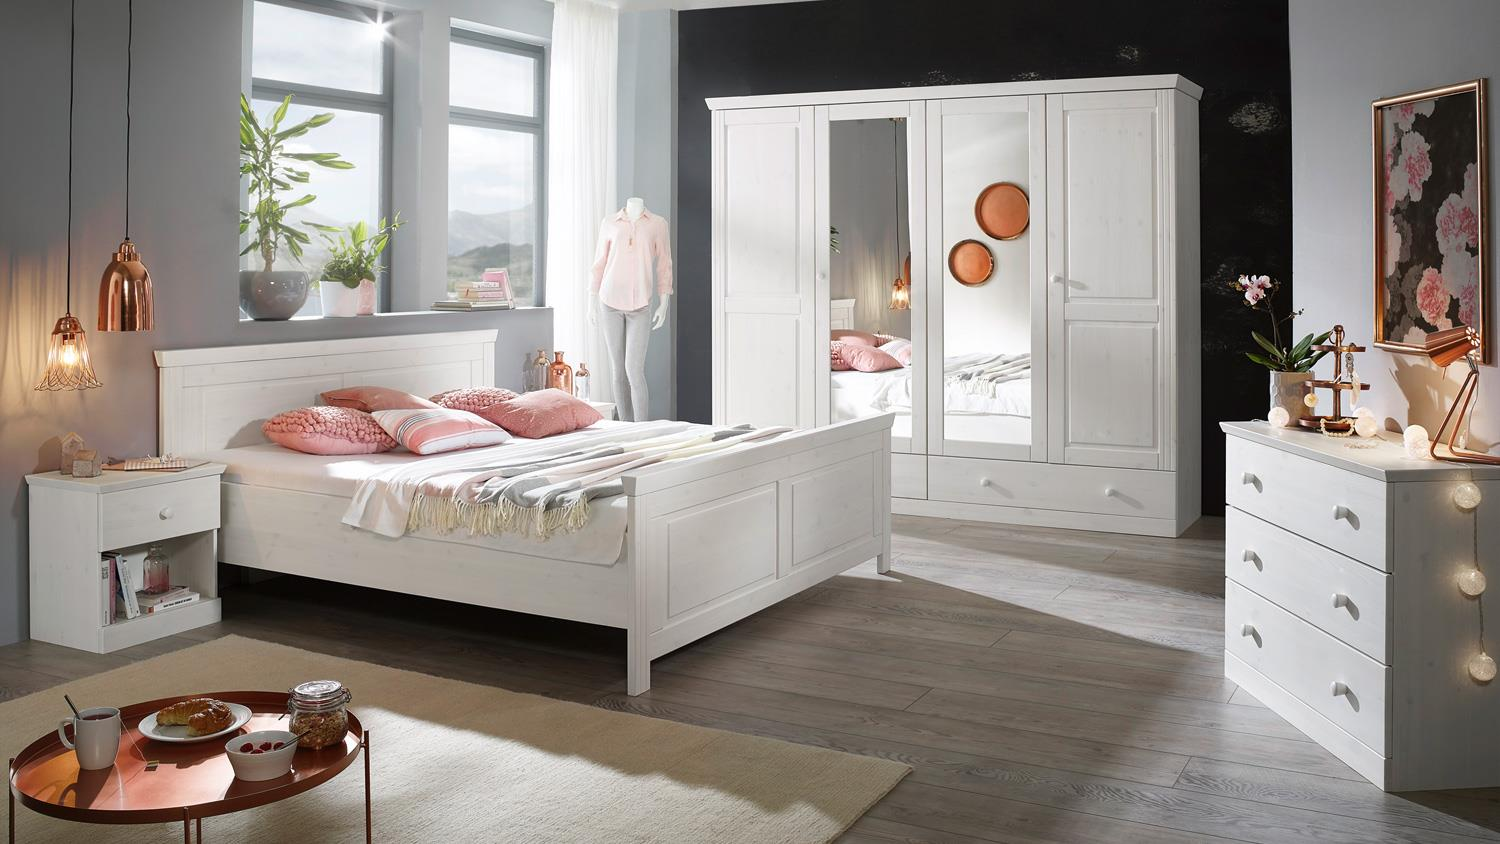 schlafzimmer genia kiefer massiv wei gewachst 4 teilig. Black Bedroom Furniture Sets. Home Design Ideas